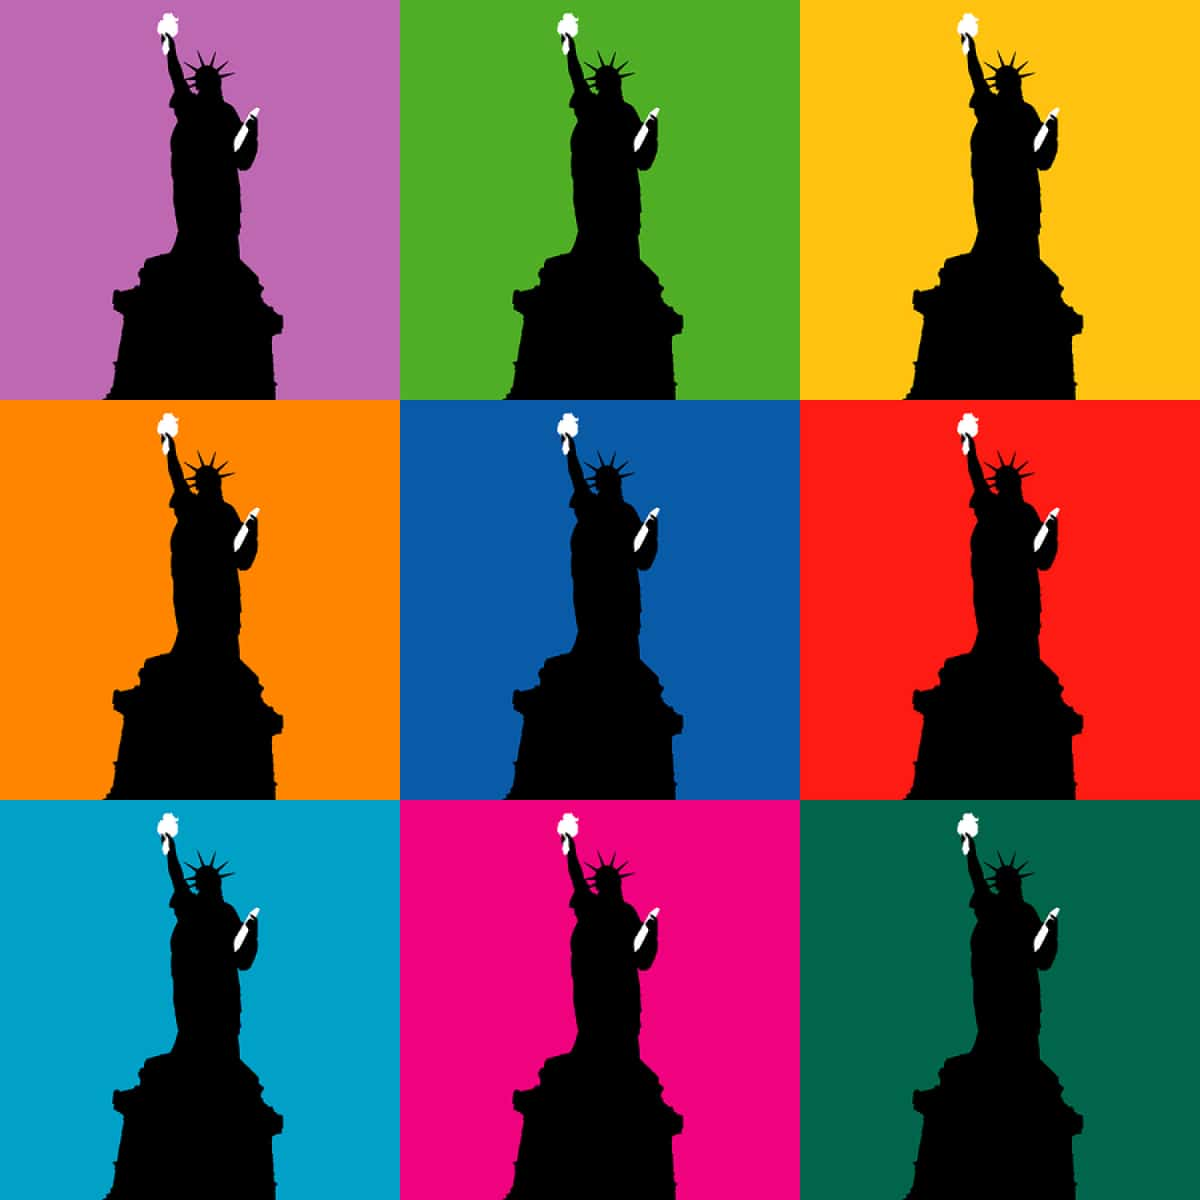 A pop art-style image of the Statue of Liberty with nine different background colors.